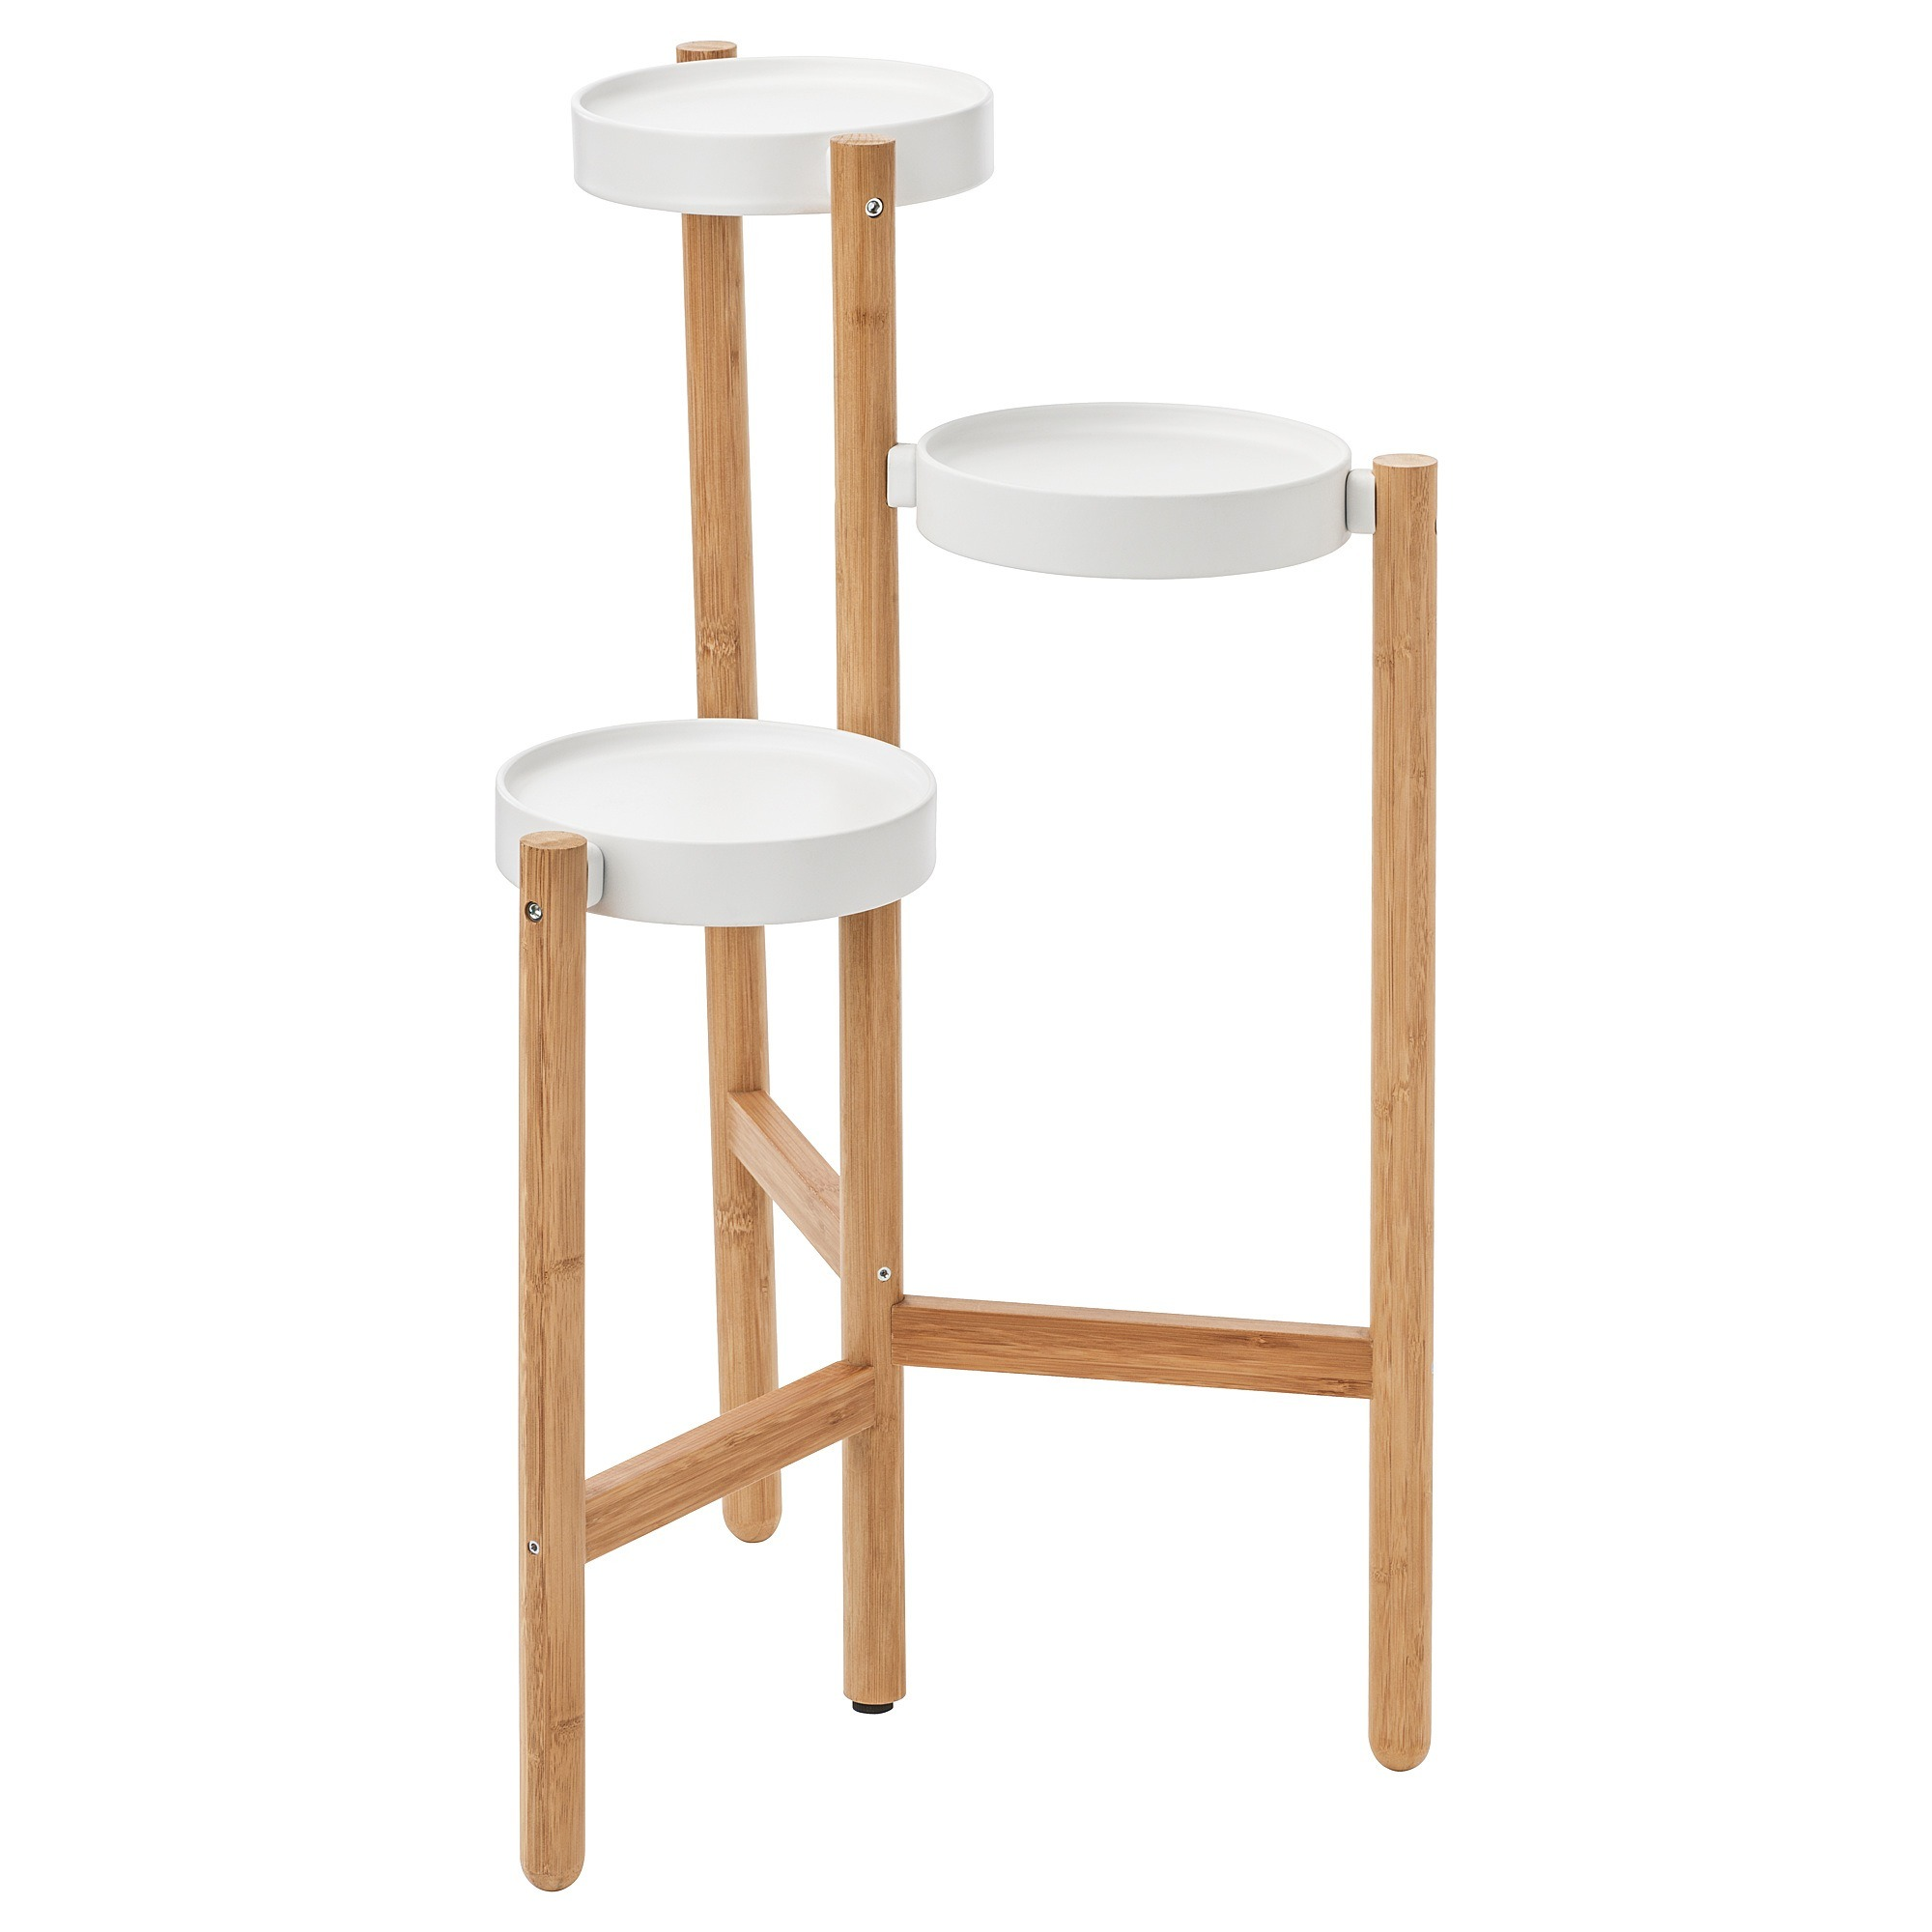 Satsumas Plant Stand 3 Plant Pots Bamboo White Conner Furniture House